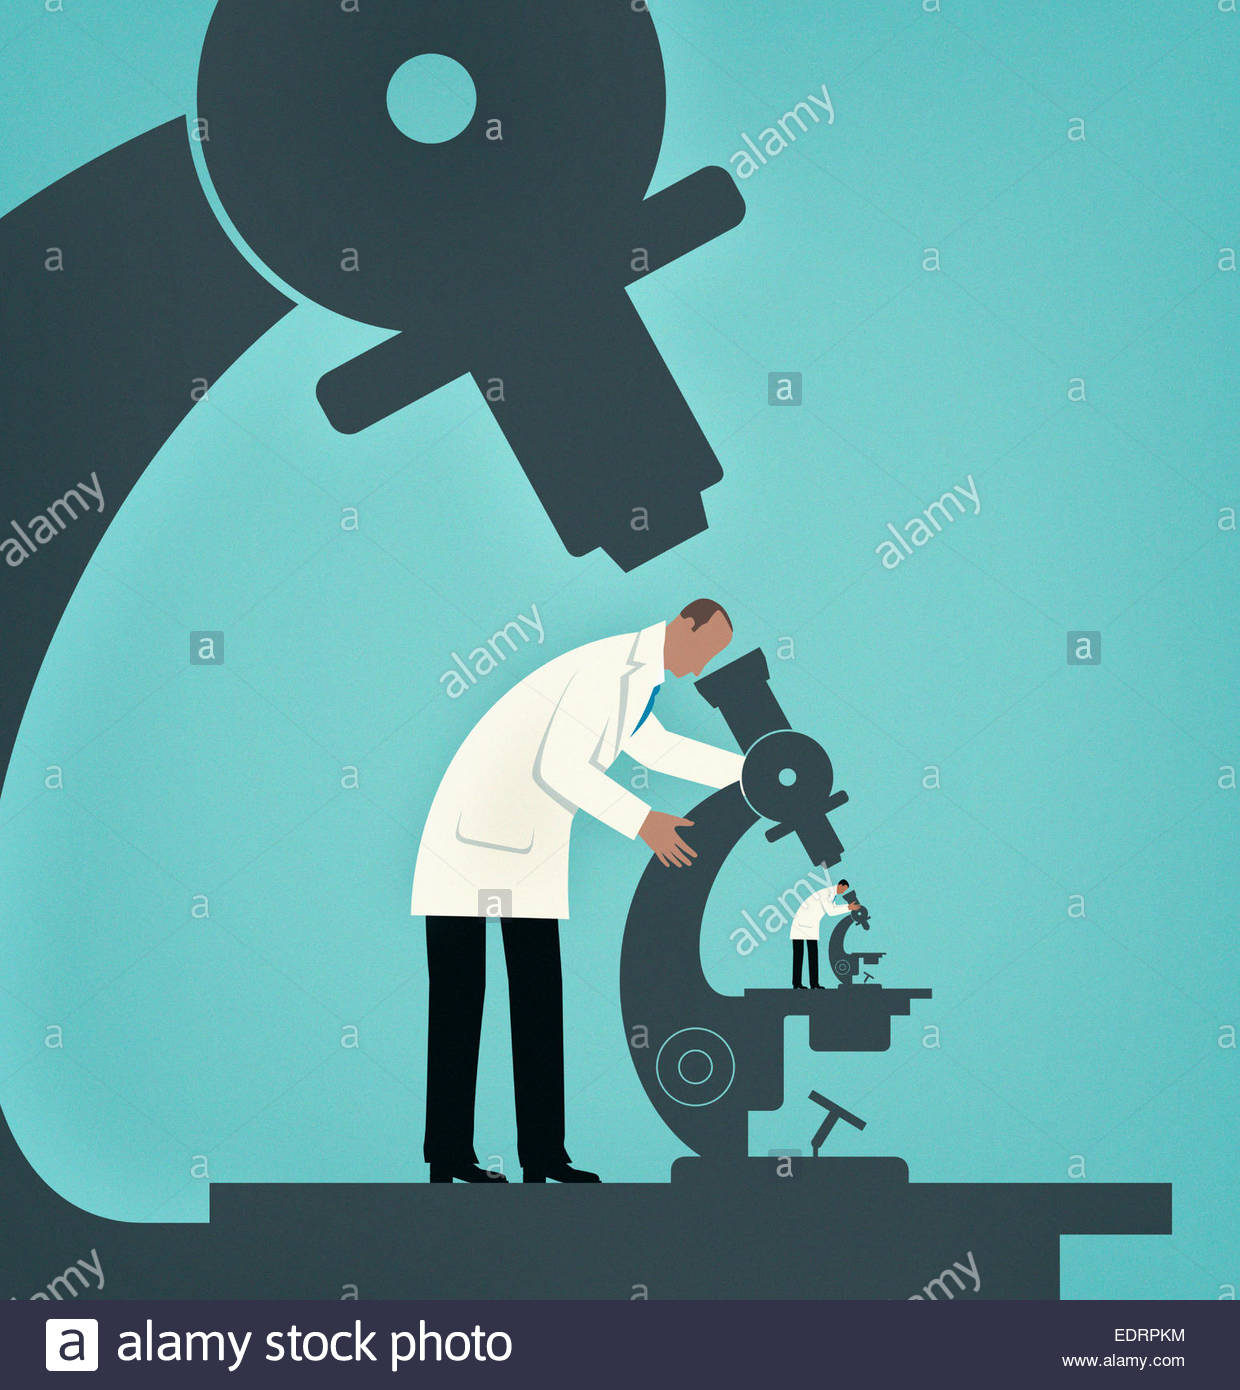 Hierarchy of large scientist studying small scientist looking through microscope - Stock Image